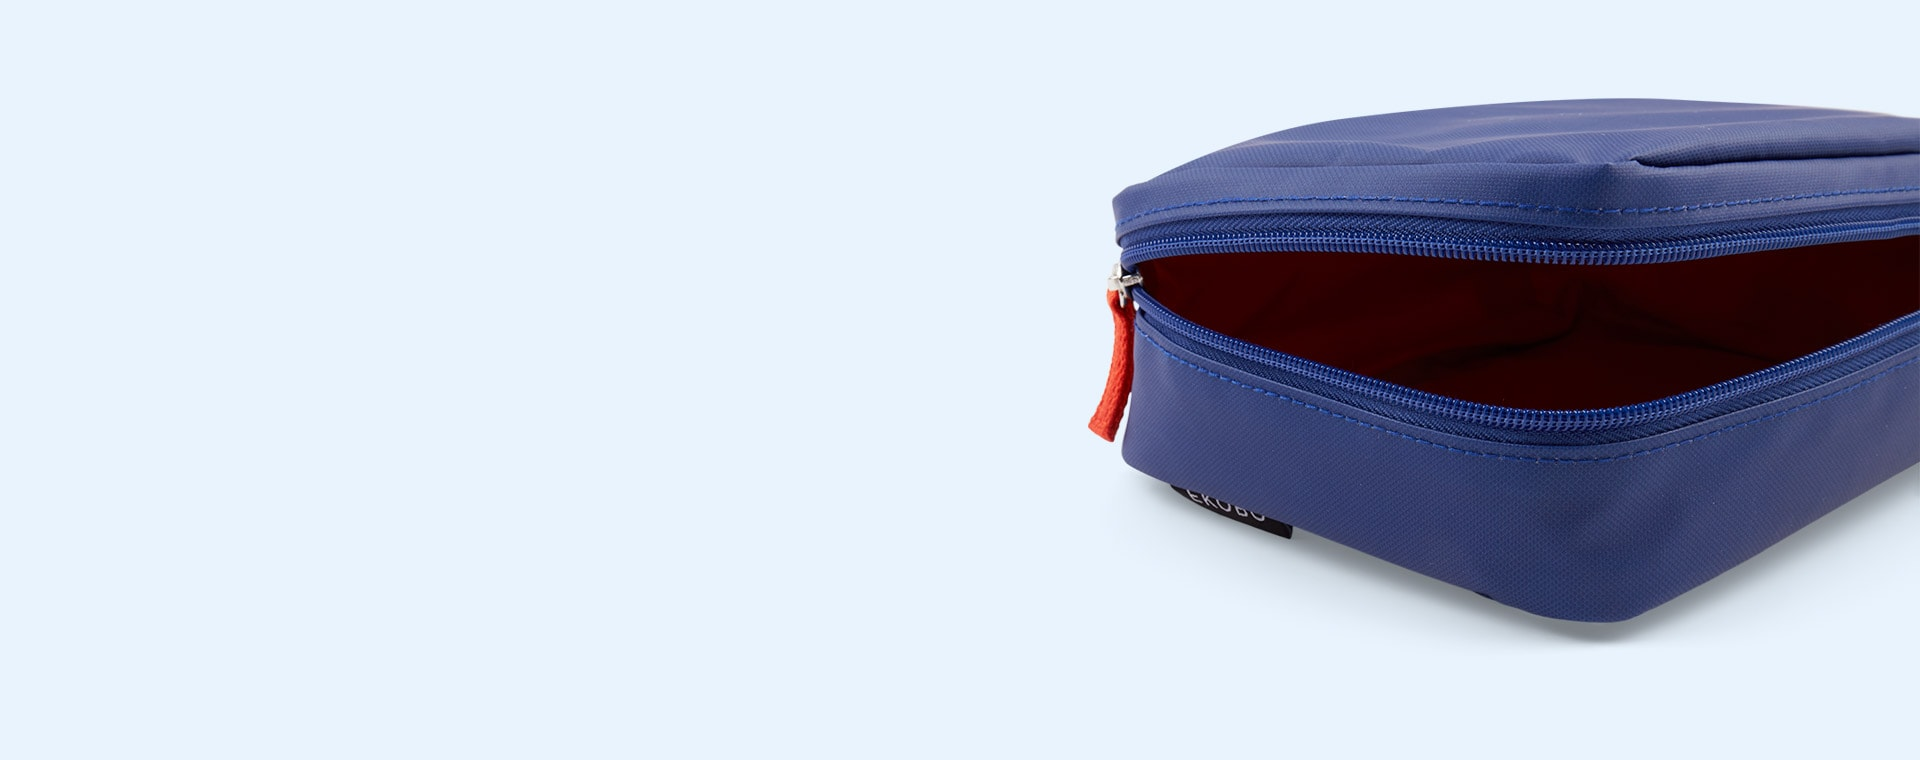 Royal Blue / Persimmon EKOBO Go Repet Lunch Bag